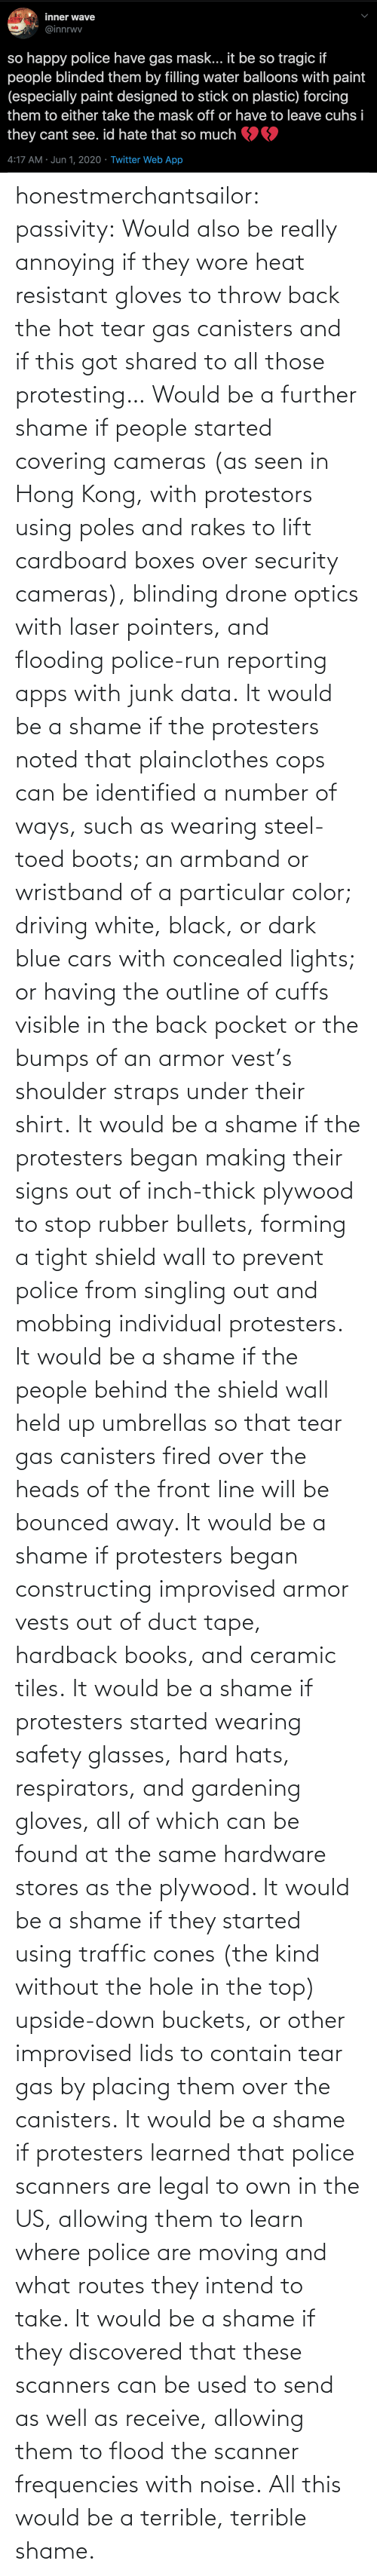 The Us: honestmerchantsailor:  passivity: Would also be really annoying if they wore heat resistant gloves to throw back the hot tear gas canisters and if this got shared to all those protesting… Would be a further shame if people started covering cameras (as seen in Hong Kong, with protestors using poles and rakes to lift cardboard boxes over security cameras), blinding drone optics with laser pointers, and flooding police-run reporting apps with junk data. It would be a shame if the protesters noted that plainclothes cops can be identified a number of ways, such as wearing steel-toed boots; an armband or wristband of a particular color; driving white, black, or dark blue cars with concealed lights; or having the outline of cuffs visible in the back pocket or the bumps of an armor vest's shoulder straps under their shirt. It would be a shame if the protesters began making their signs out of inch-thick plywood to stop rubber bullets, forming a tight shield wall to prevent police from singling out and mobbing individual protesters. It would be a shame if the people behind the shield wall held up umbrellas so that tear gas canisters fired over the heads of the front line will be bounced away. It would be a shame if protesters began constructing improvised armor vests out of duct tape, hardback books, and ceramic tiles. It would be a shame if protesters started wearing safety glasses, hard hats, respirators, and gardening gloves, all of which can be found at the same hardware stores as the plywood. It would be a shame if they started using traffic cones (the kind without the hole in the top) upside-down buckets, or other improvised lids to contain tear gas by placing them over the canisters. It would be a shame if protesters learned that police scanners are legal to own in the US, allowing them to learn where police are moving and what routes they intend to take. It would be a shame if they discovered that these scanners can be used to send as well as receive, allowing them to flood the scanner frequencies with noise. All this would be a terrible, terrible shame.